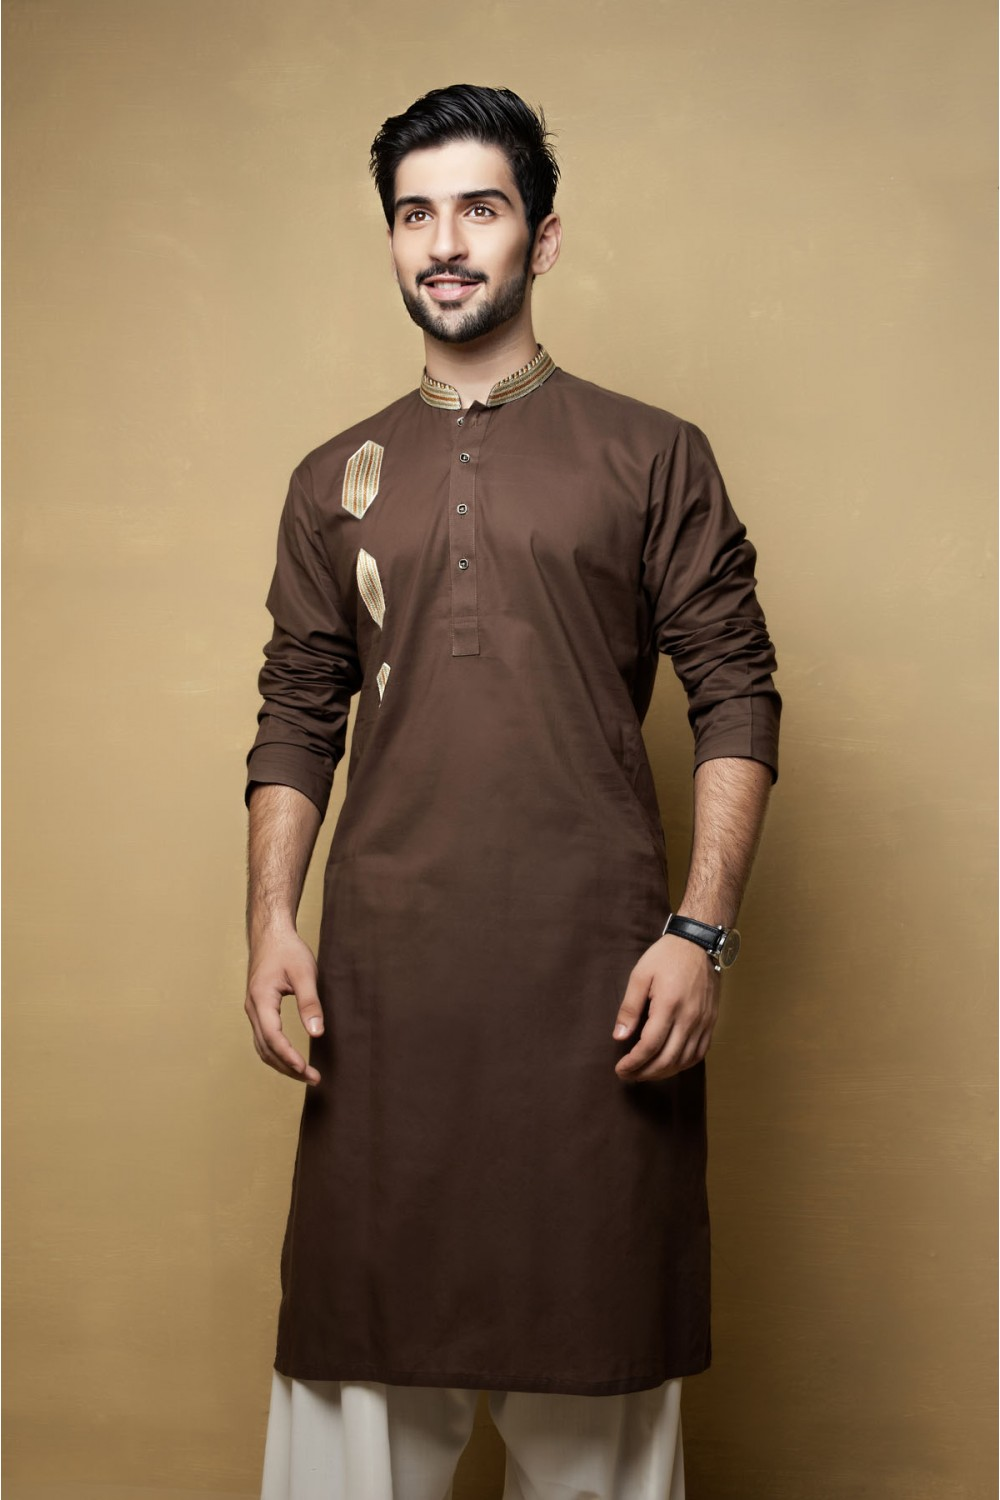 Kurta men latest styles designs best photo